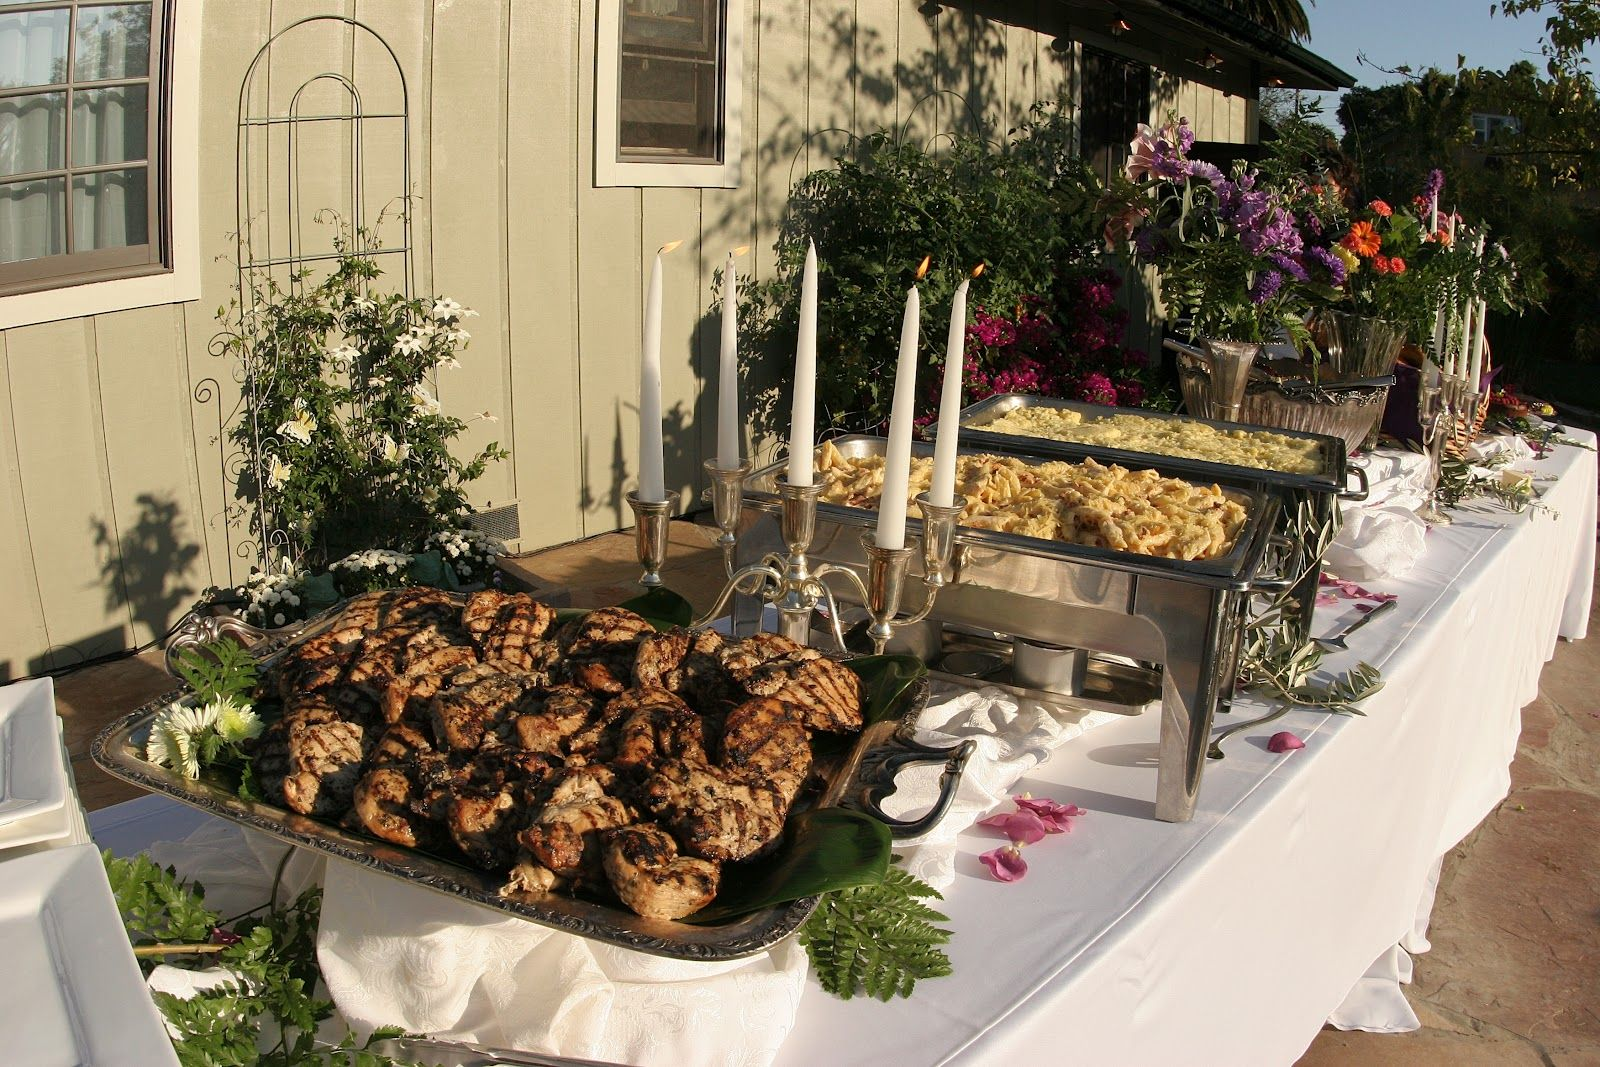 Barbecue Wedding Reception Ideas | ... Services For Kosher, Vegan,  Vegetarian,